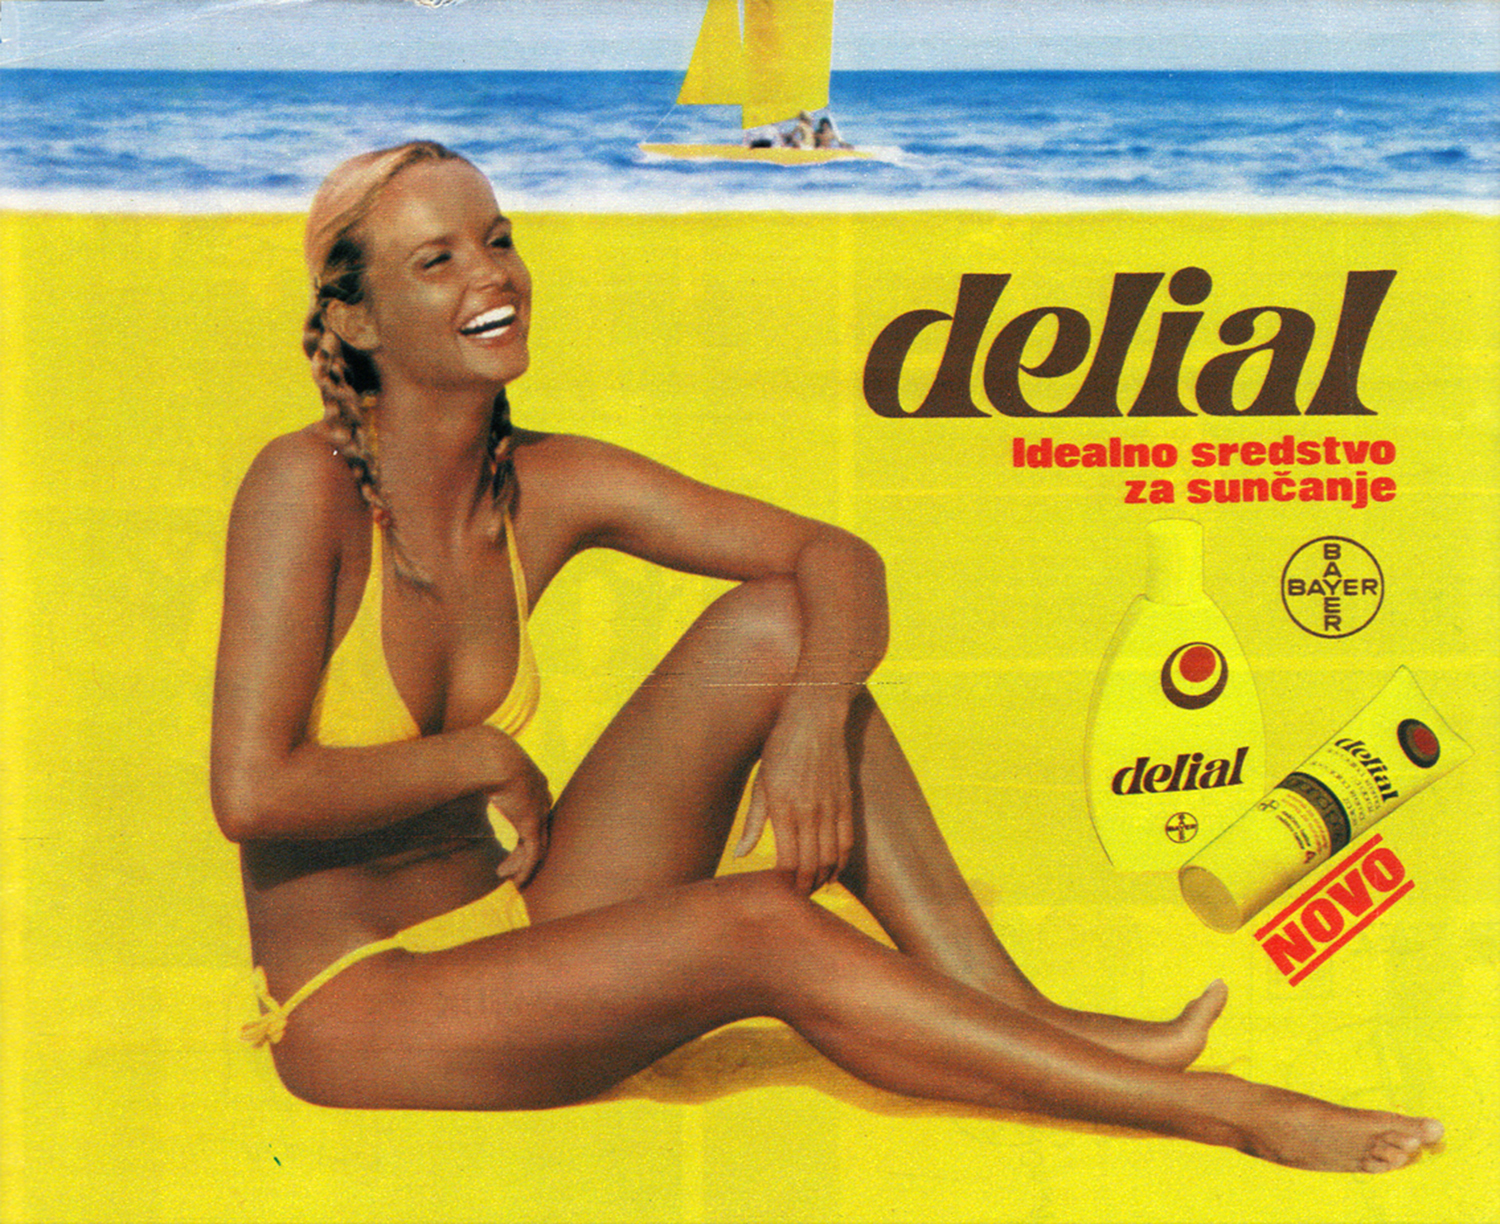 delial sun tan advert